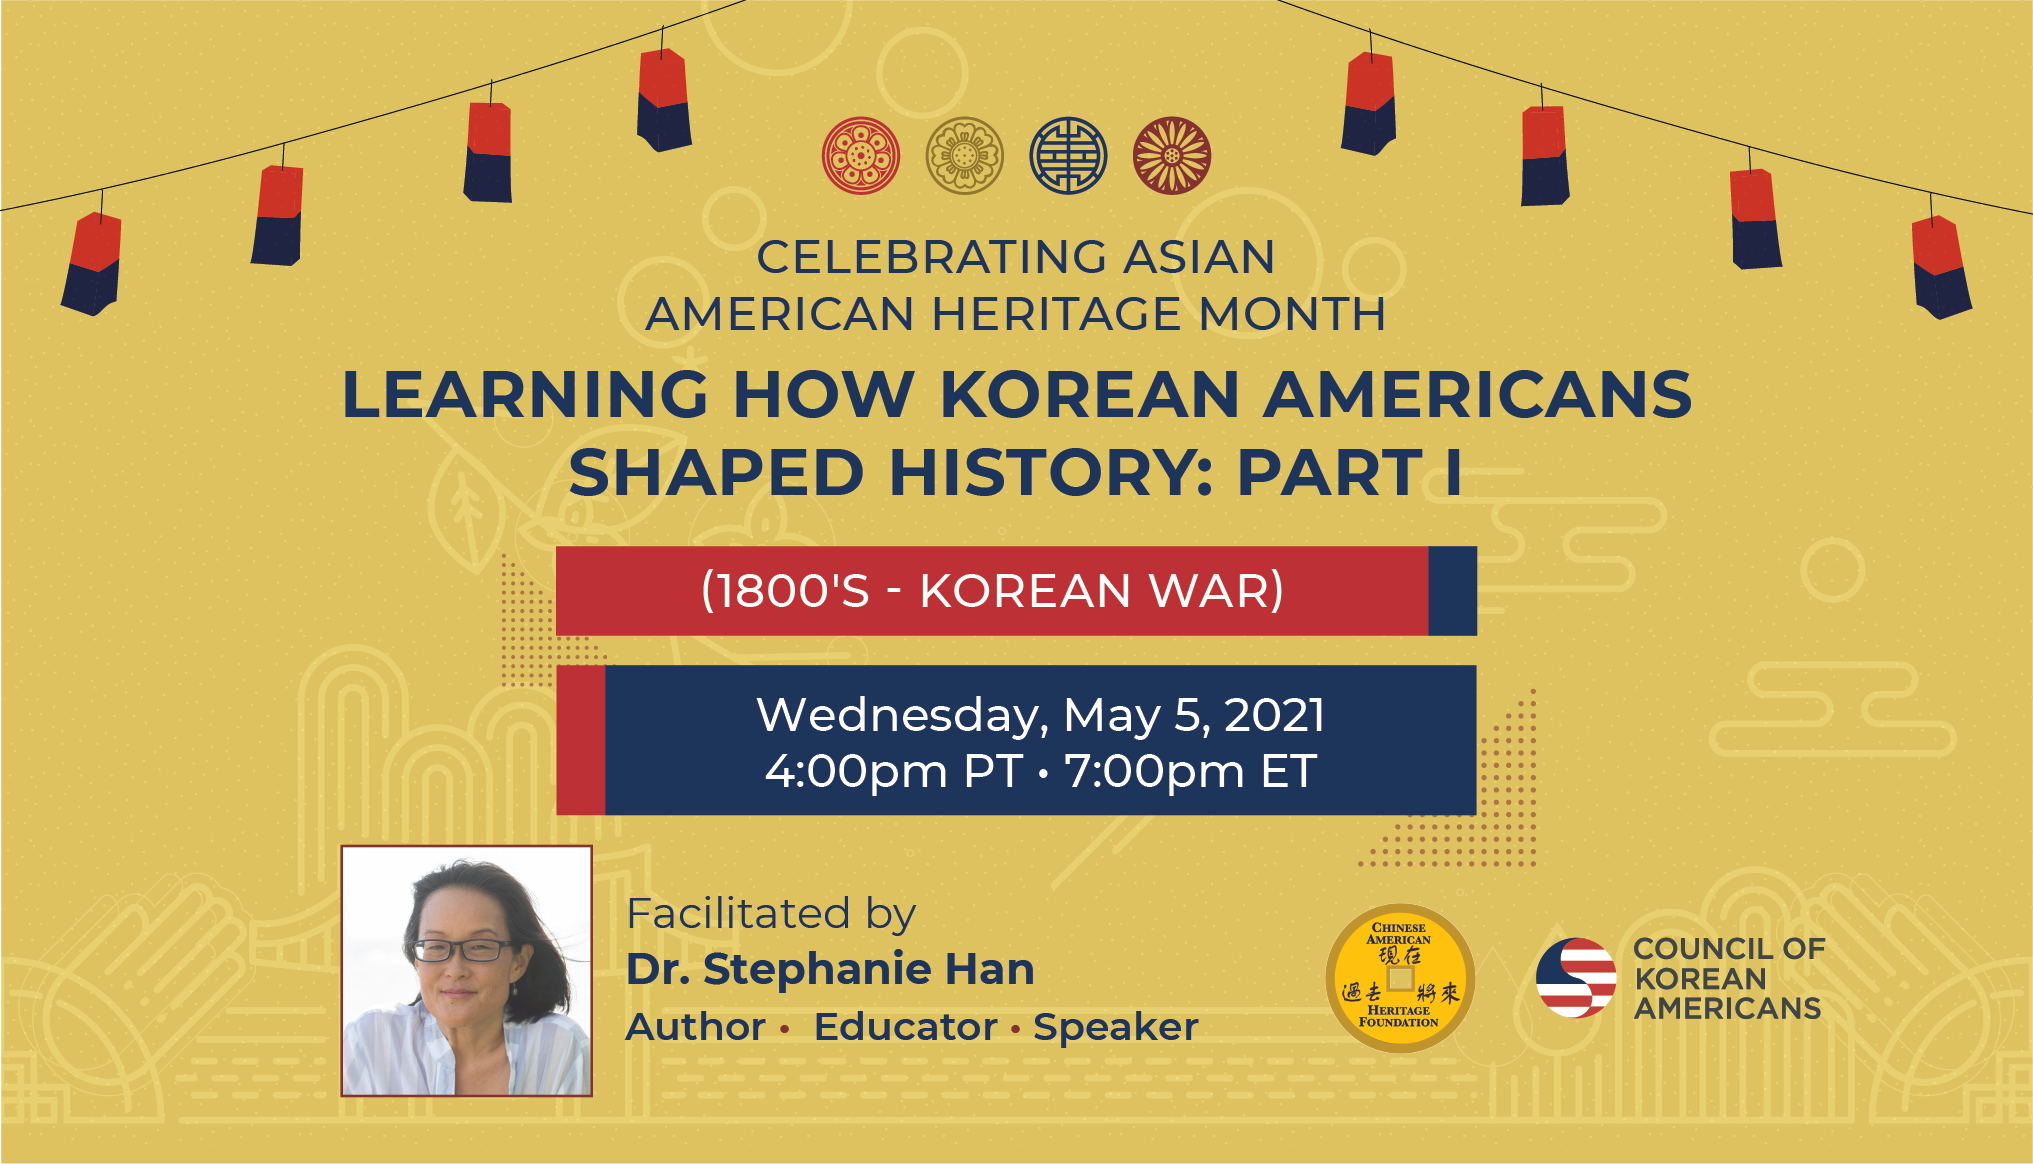 042721_CKA_Asian American Heritage Month_Event-01.png